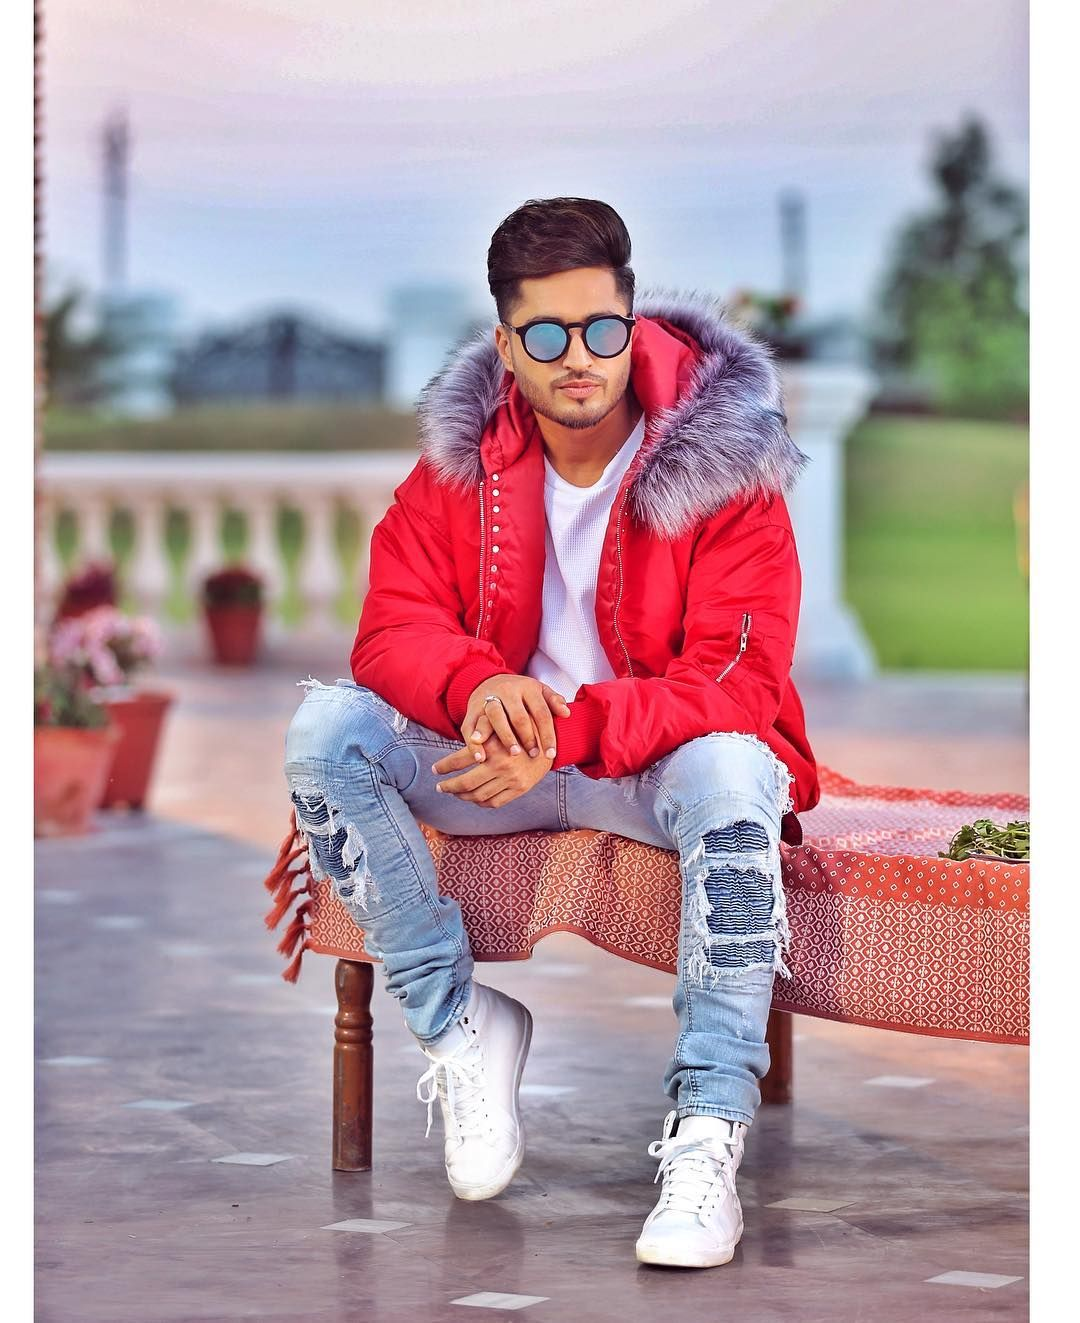 Jassi Gill Age, Girlfriend, Wife, Family, Biography & More